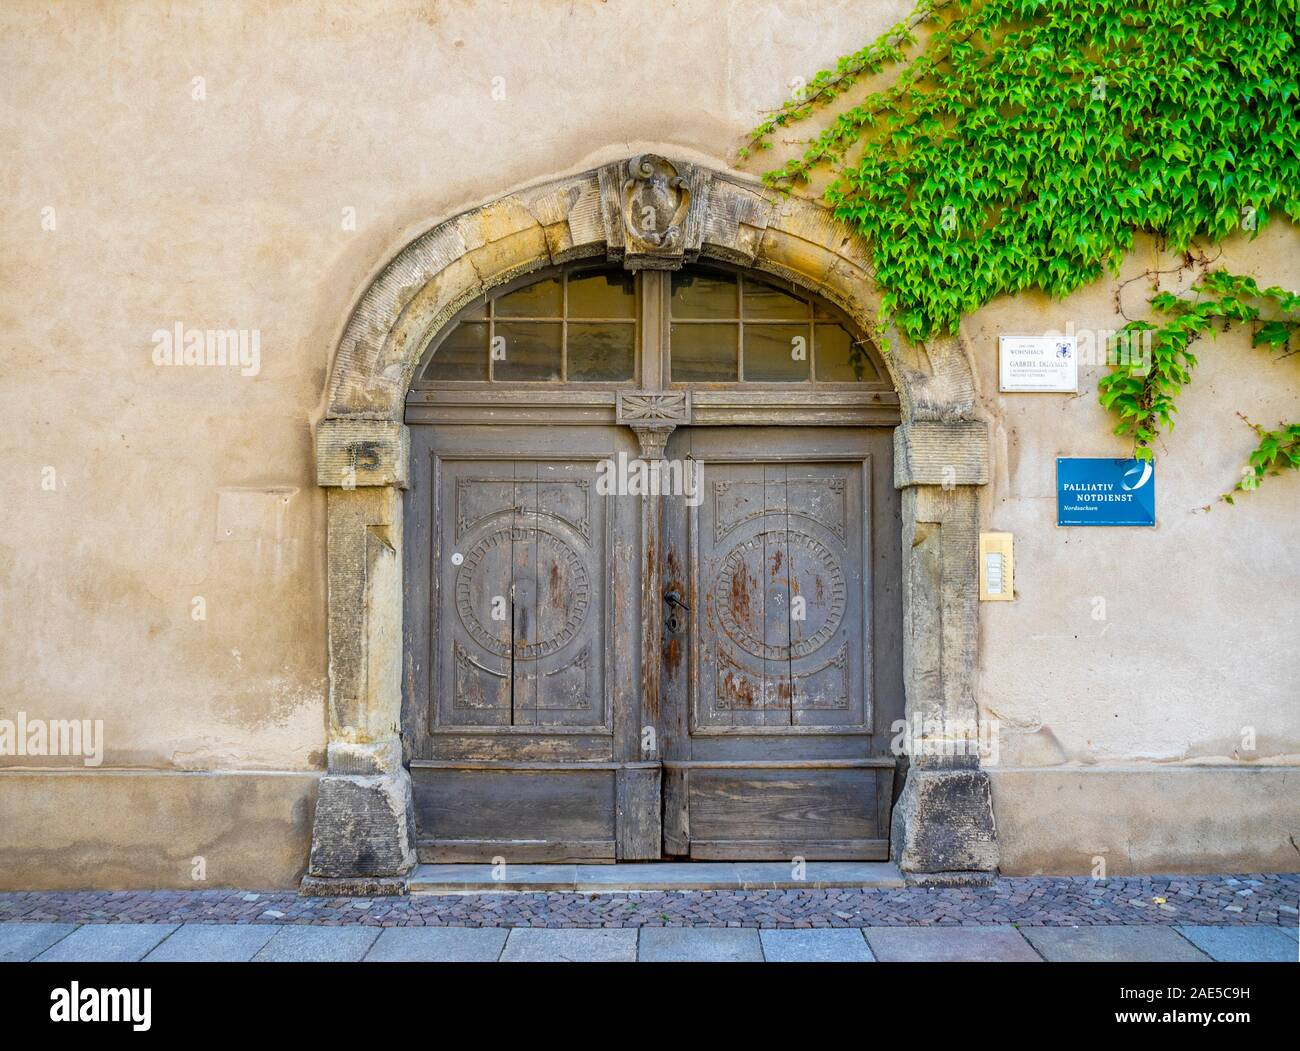 Page 2 Architrave High Resolution Stock Photography And Images Alamy